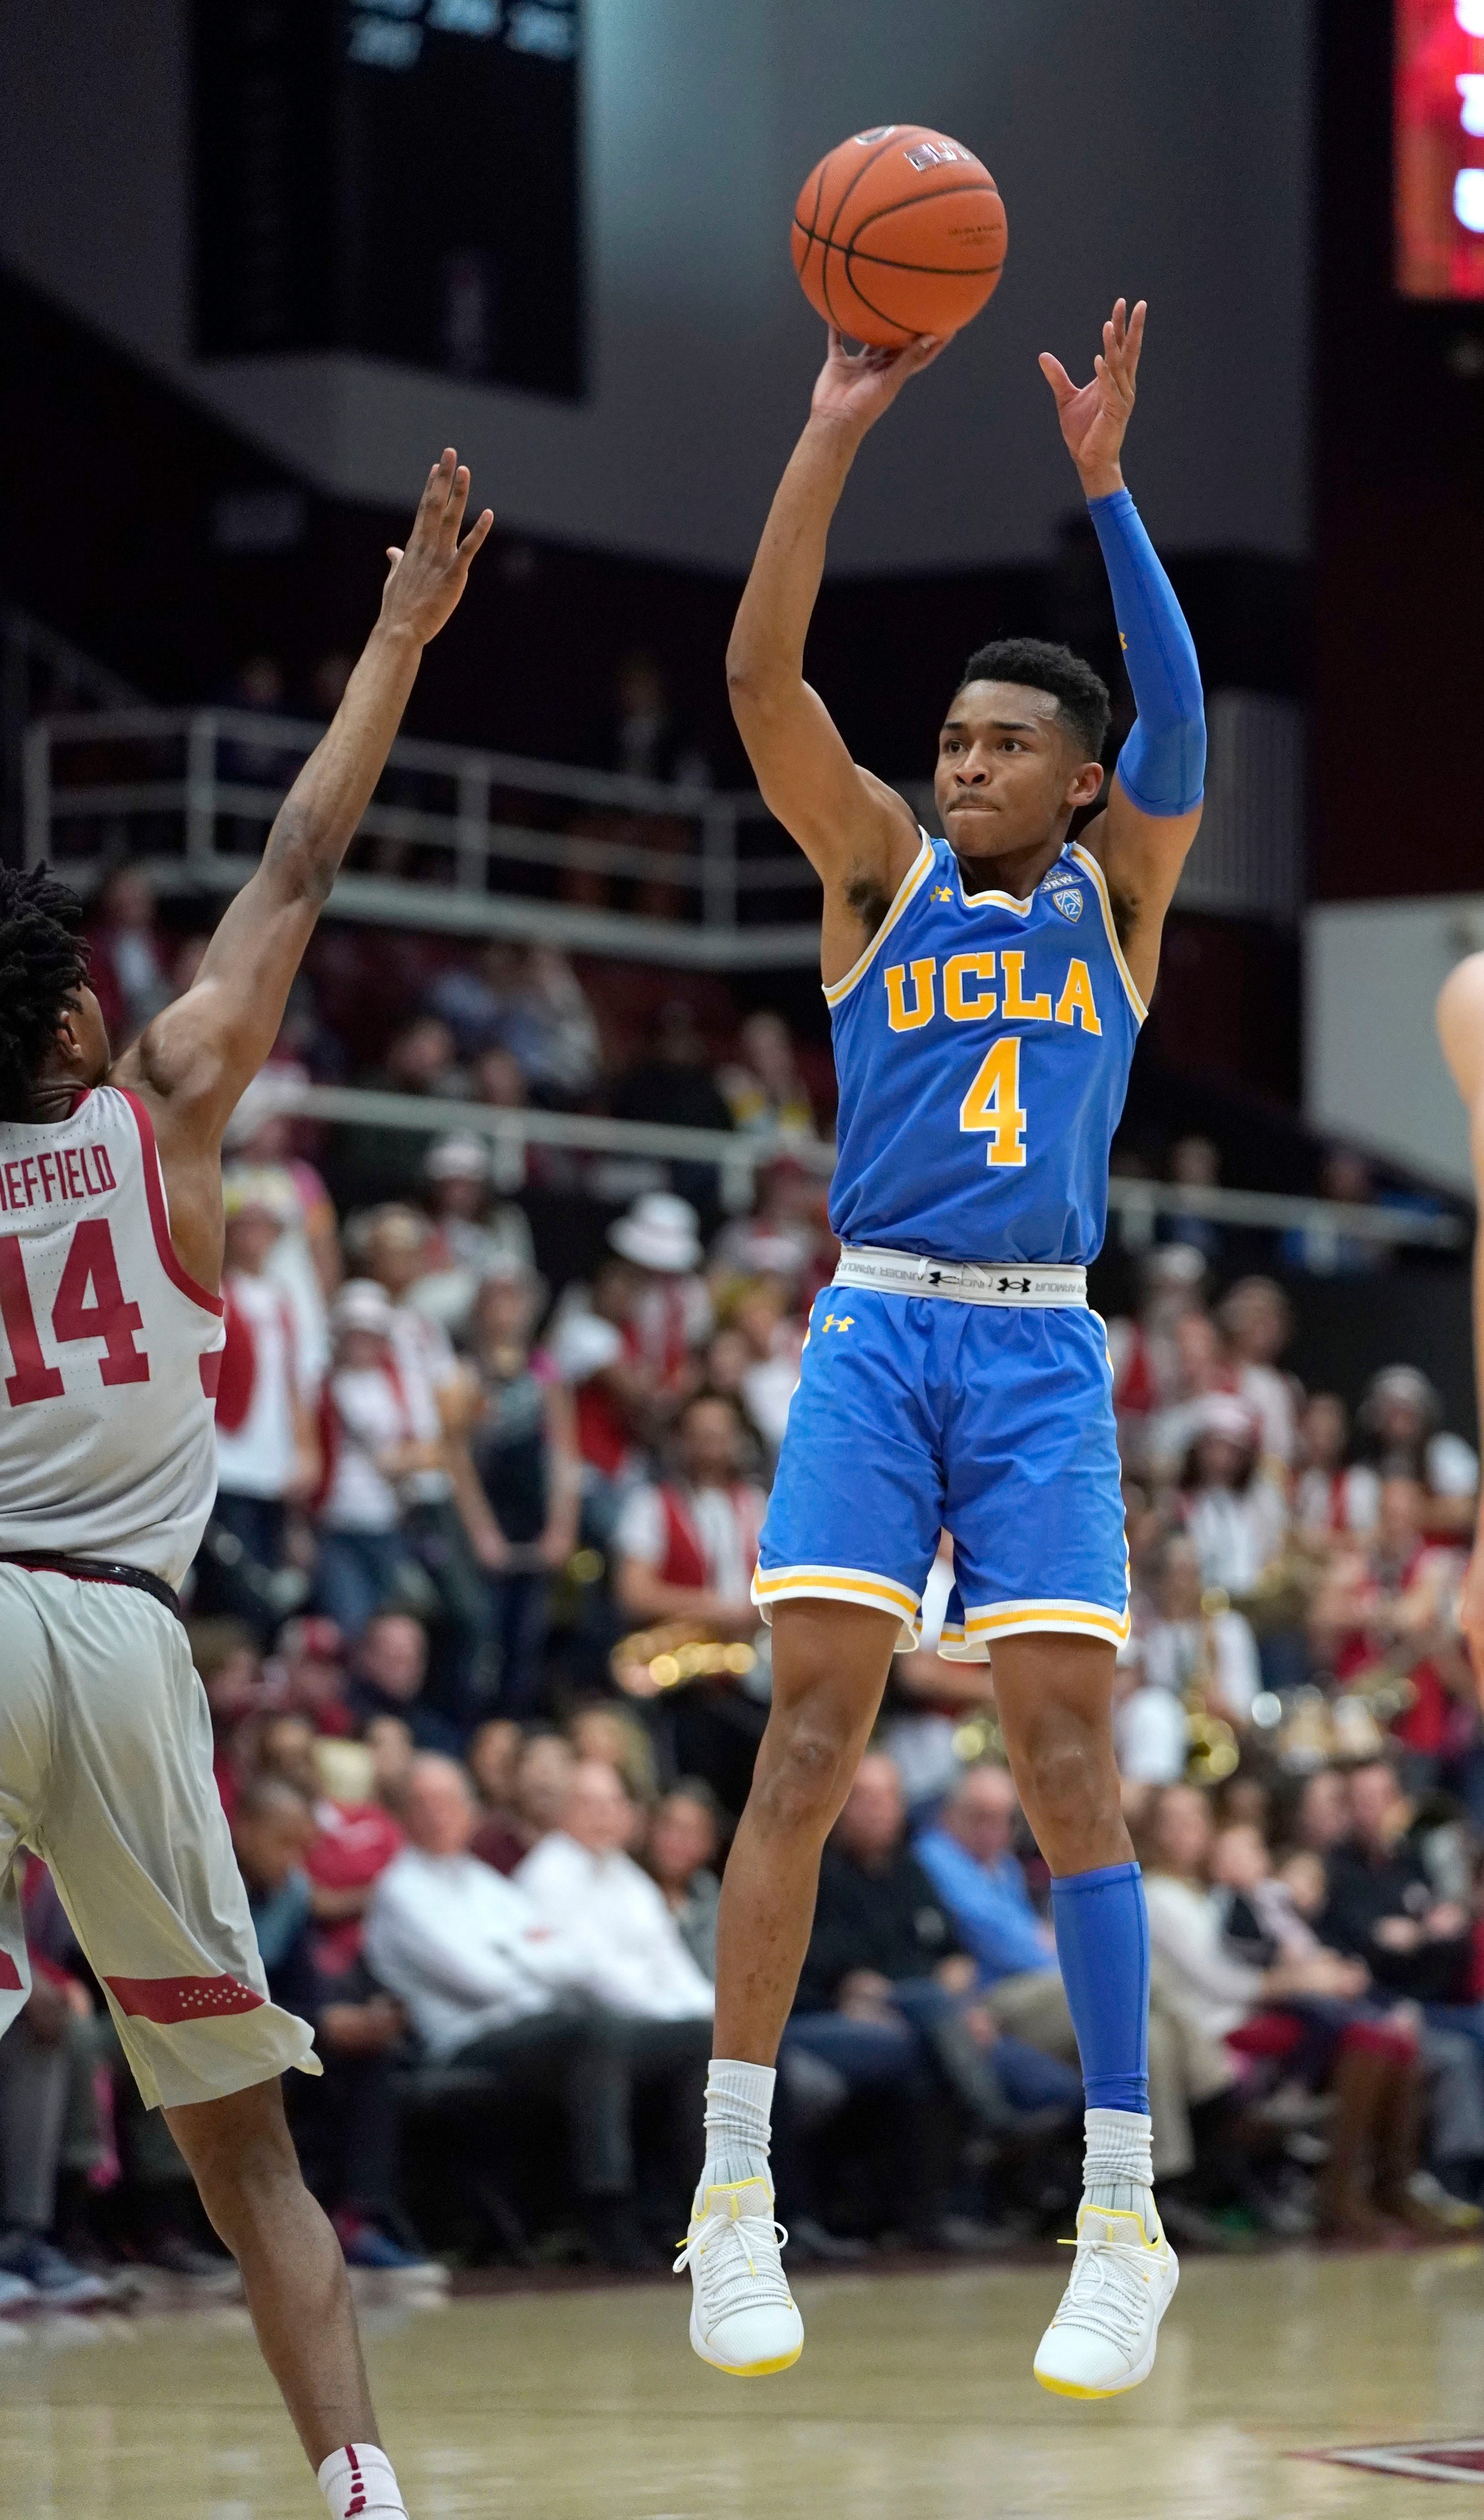 Sharma's double-double helps Stanford beat UCLA 104-80